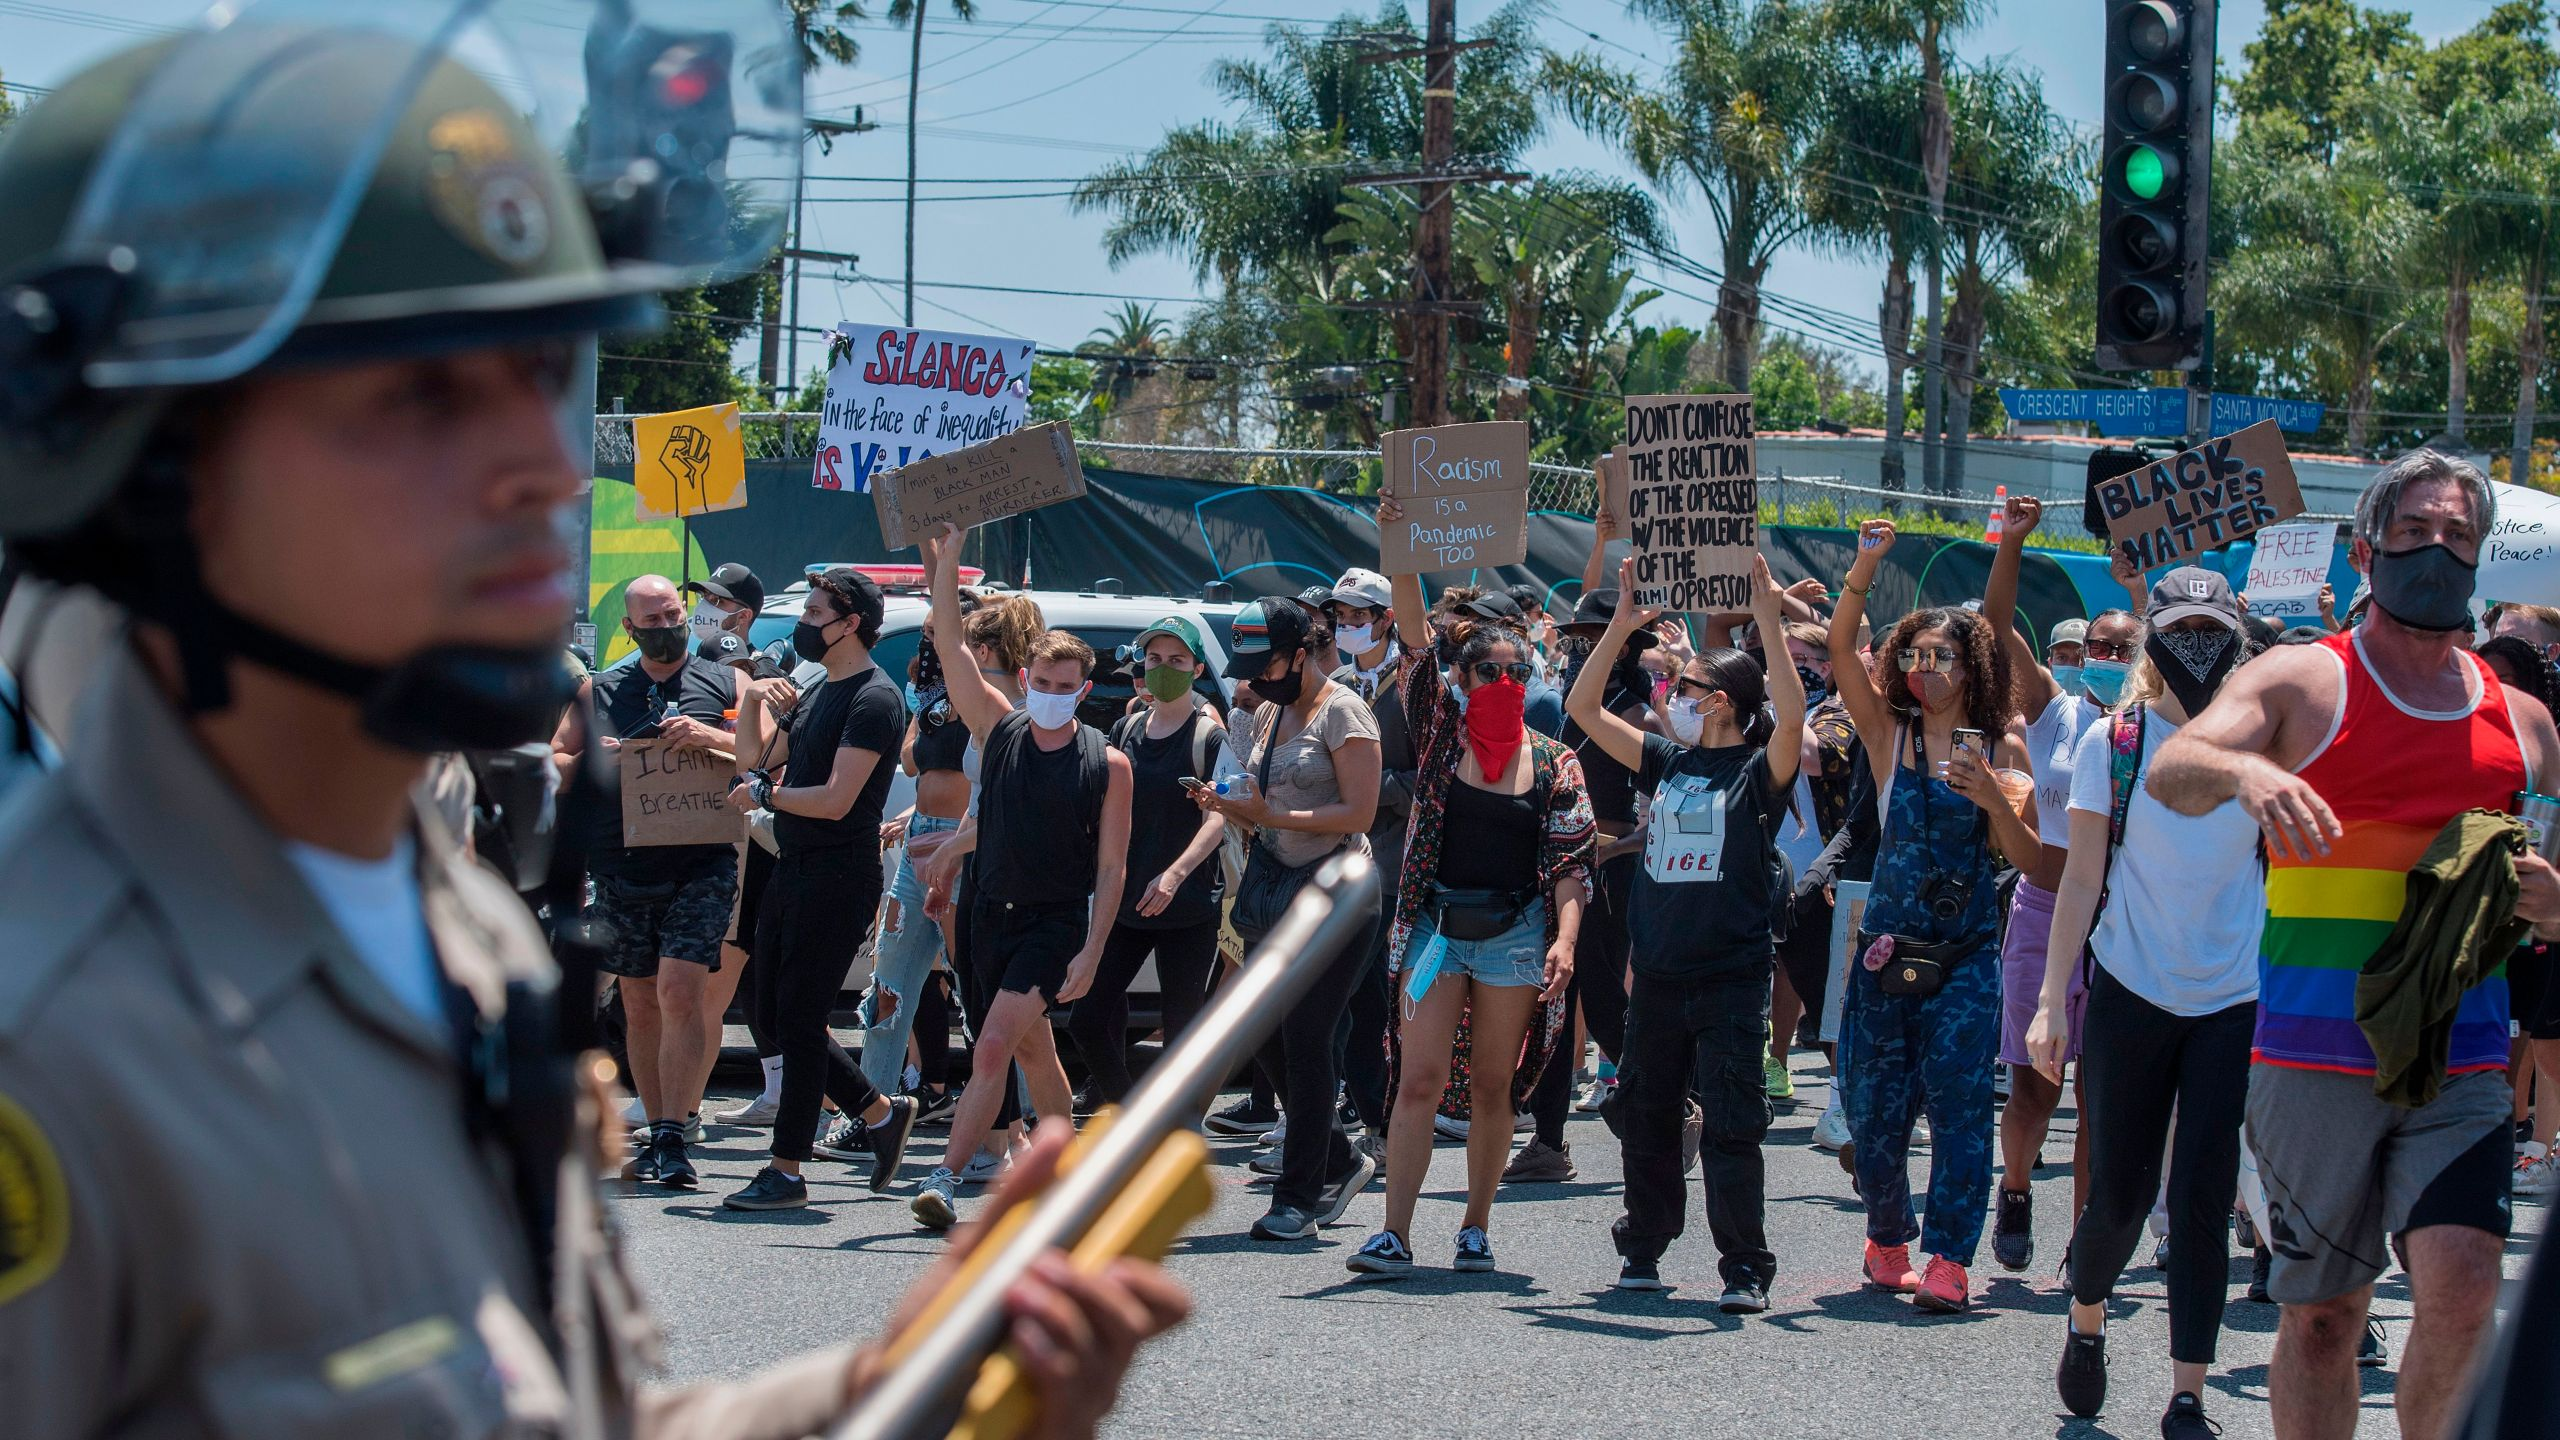 Deputies from the Los Angeles County Sheriff's Department keep watch as demonstrators continue to protest the death of George Floyd in West Hollywood on June 3, 2020. (Mark Ralston / AFP / Getty Images)